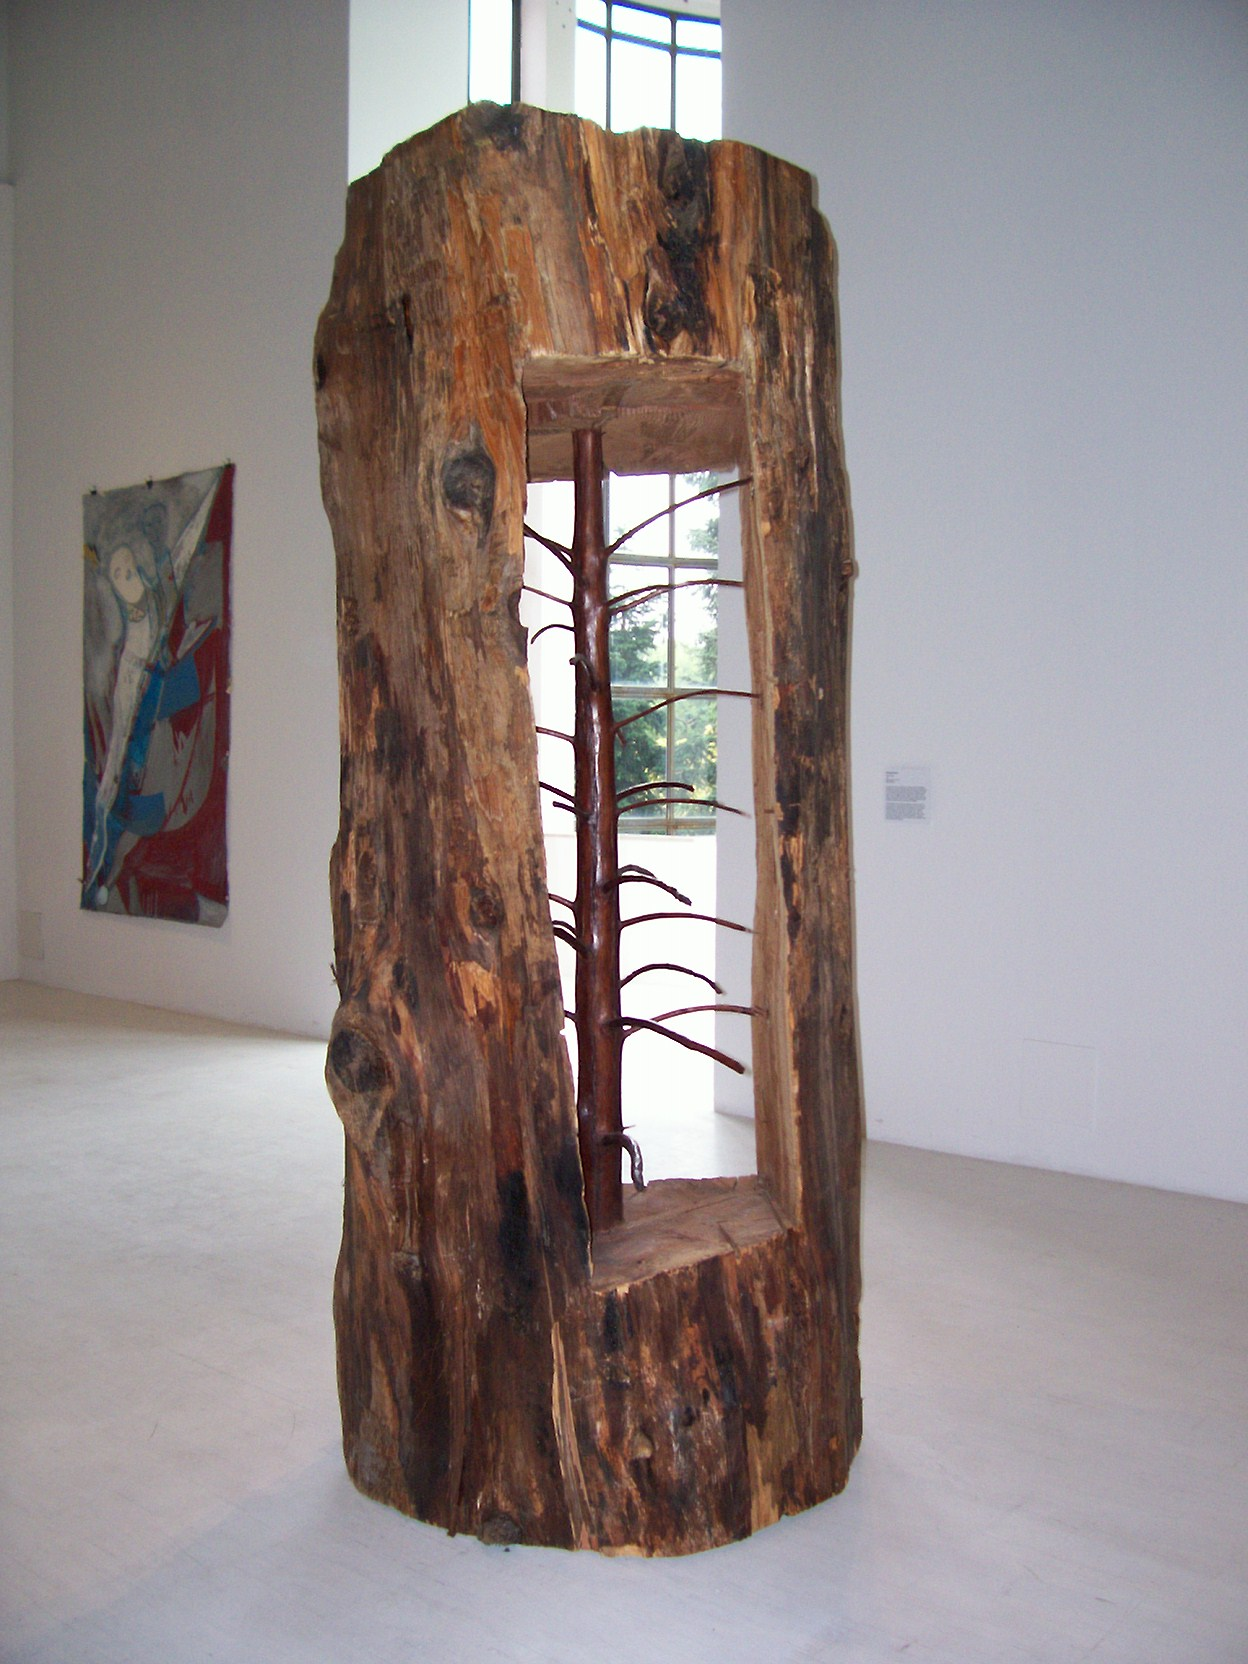 1000 images about giuseppe penone on pinterest for Piattaie arte povera